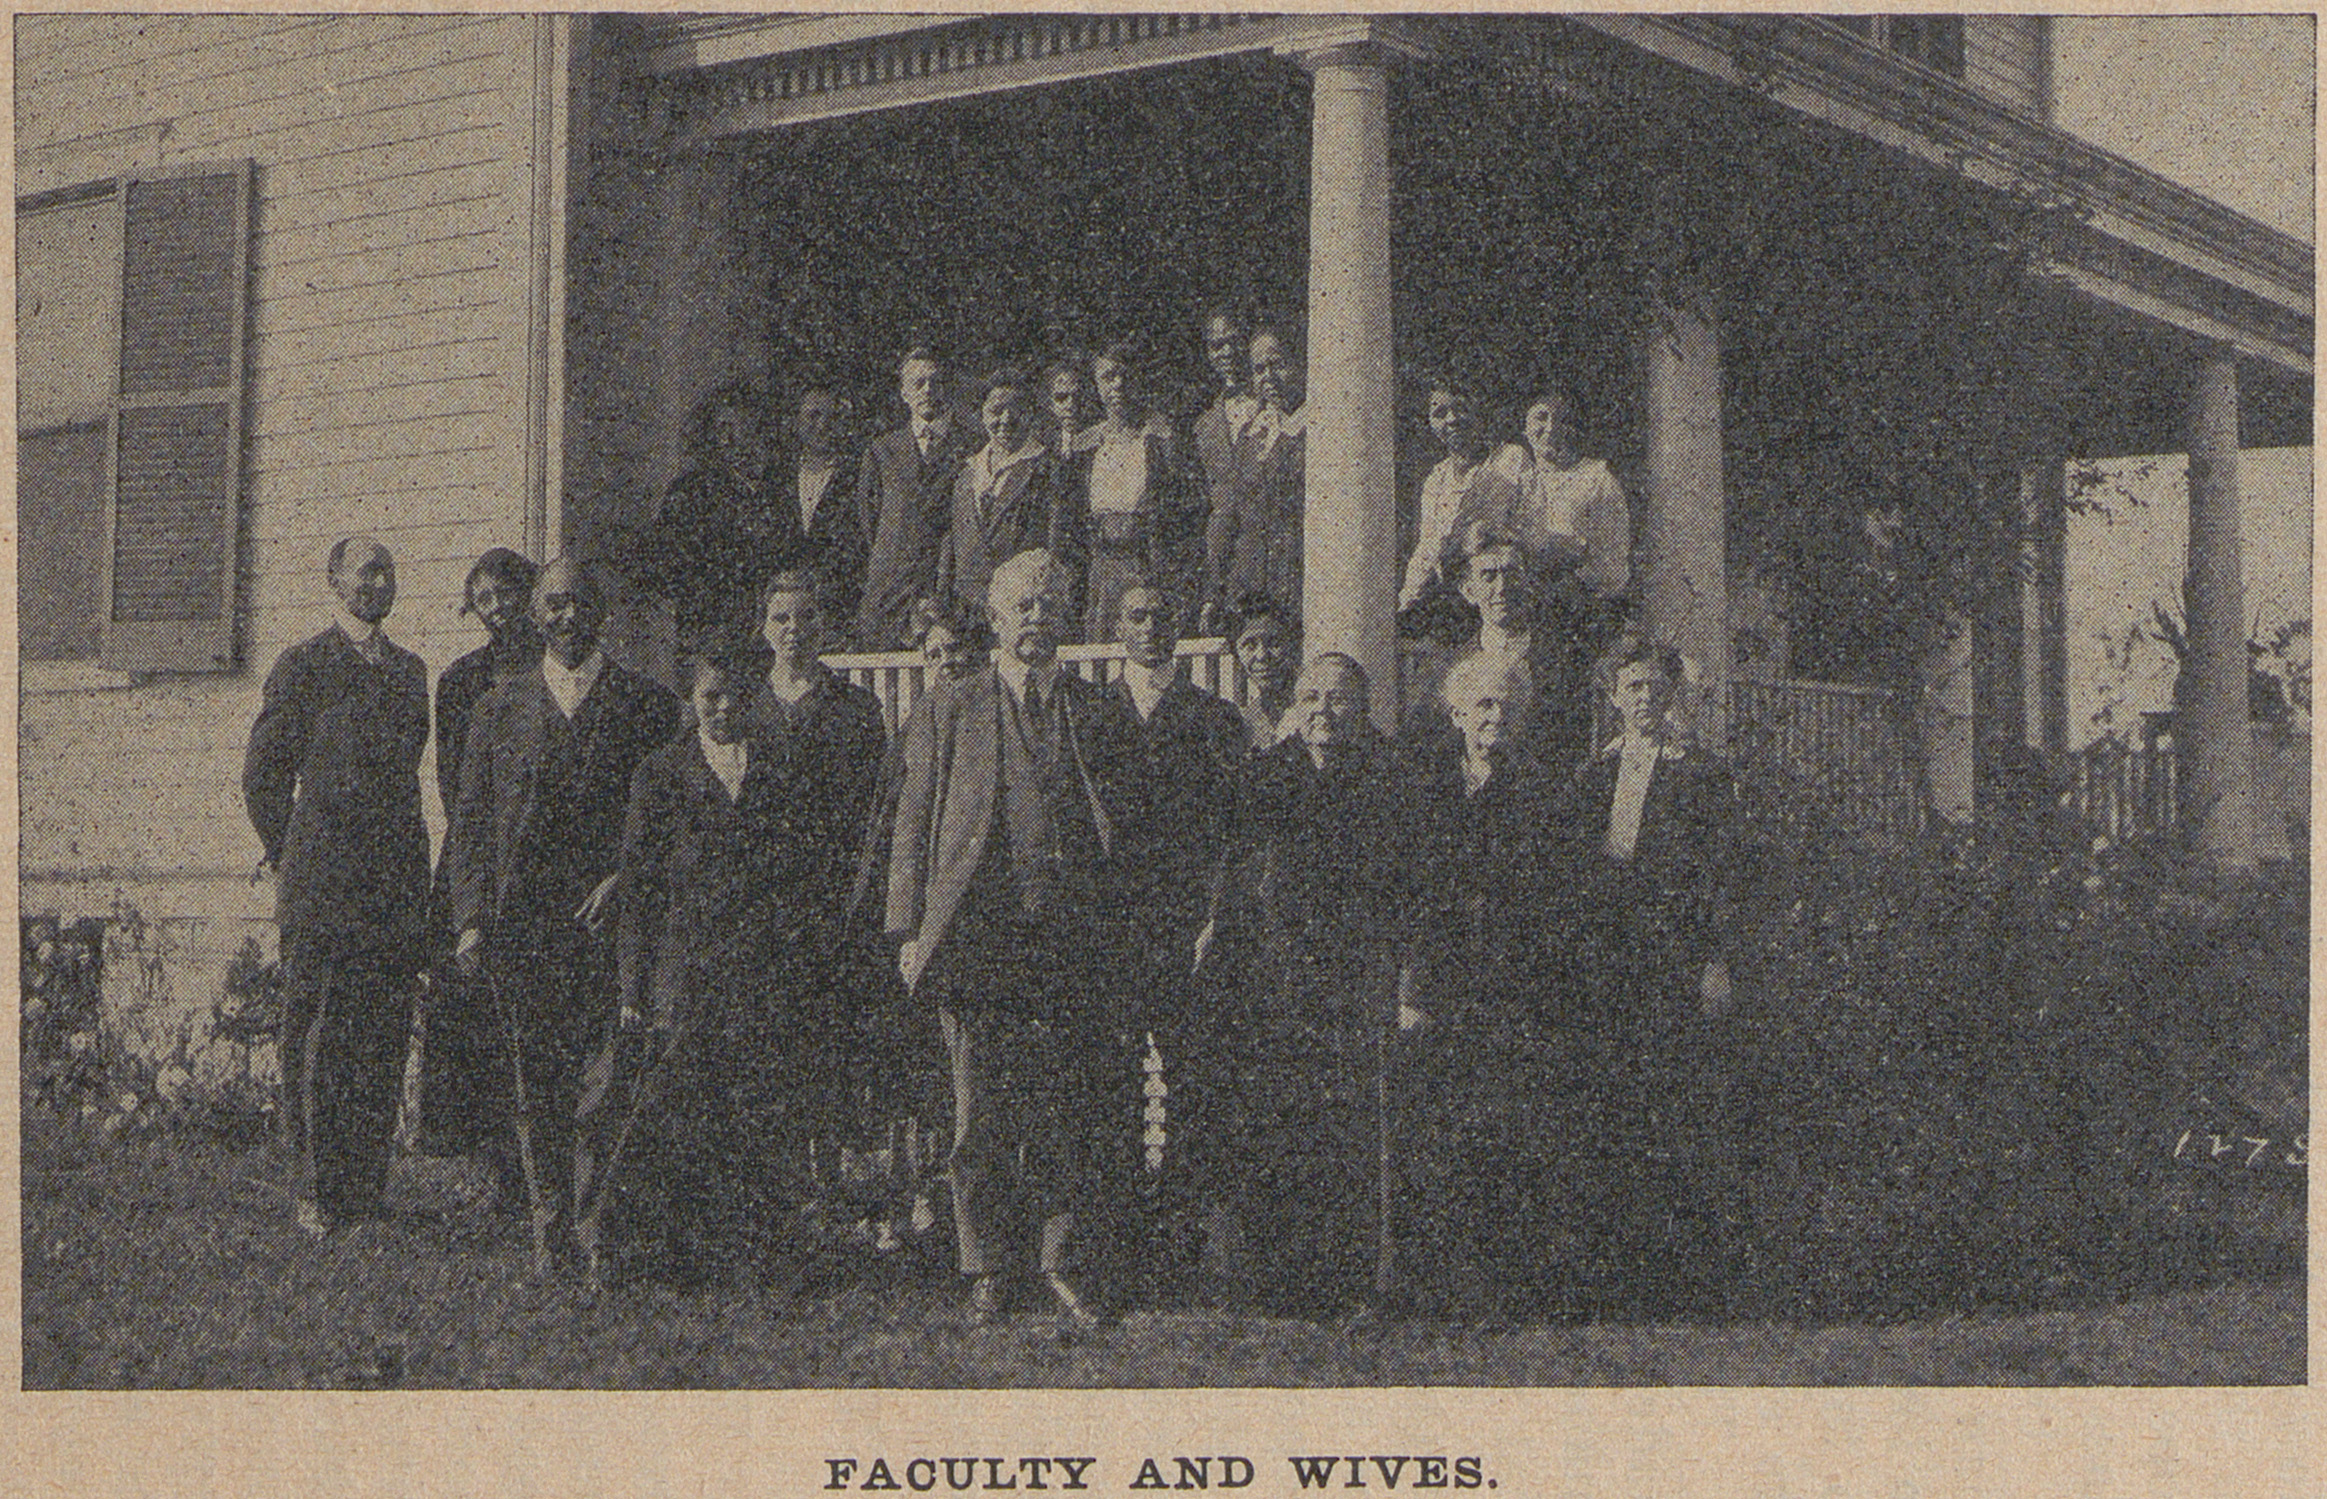 Black and white photograph of an interracial group of educators and their spouses on a porch.